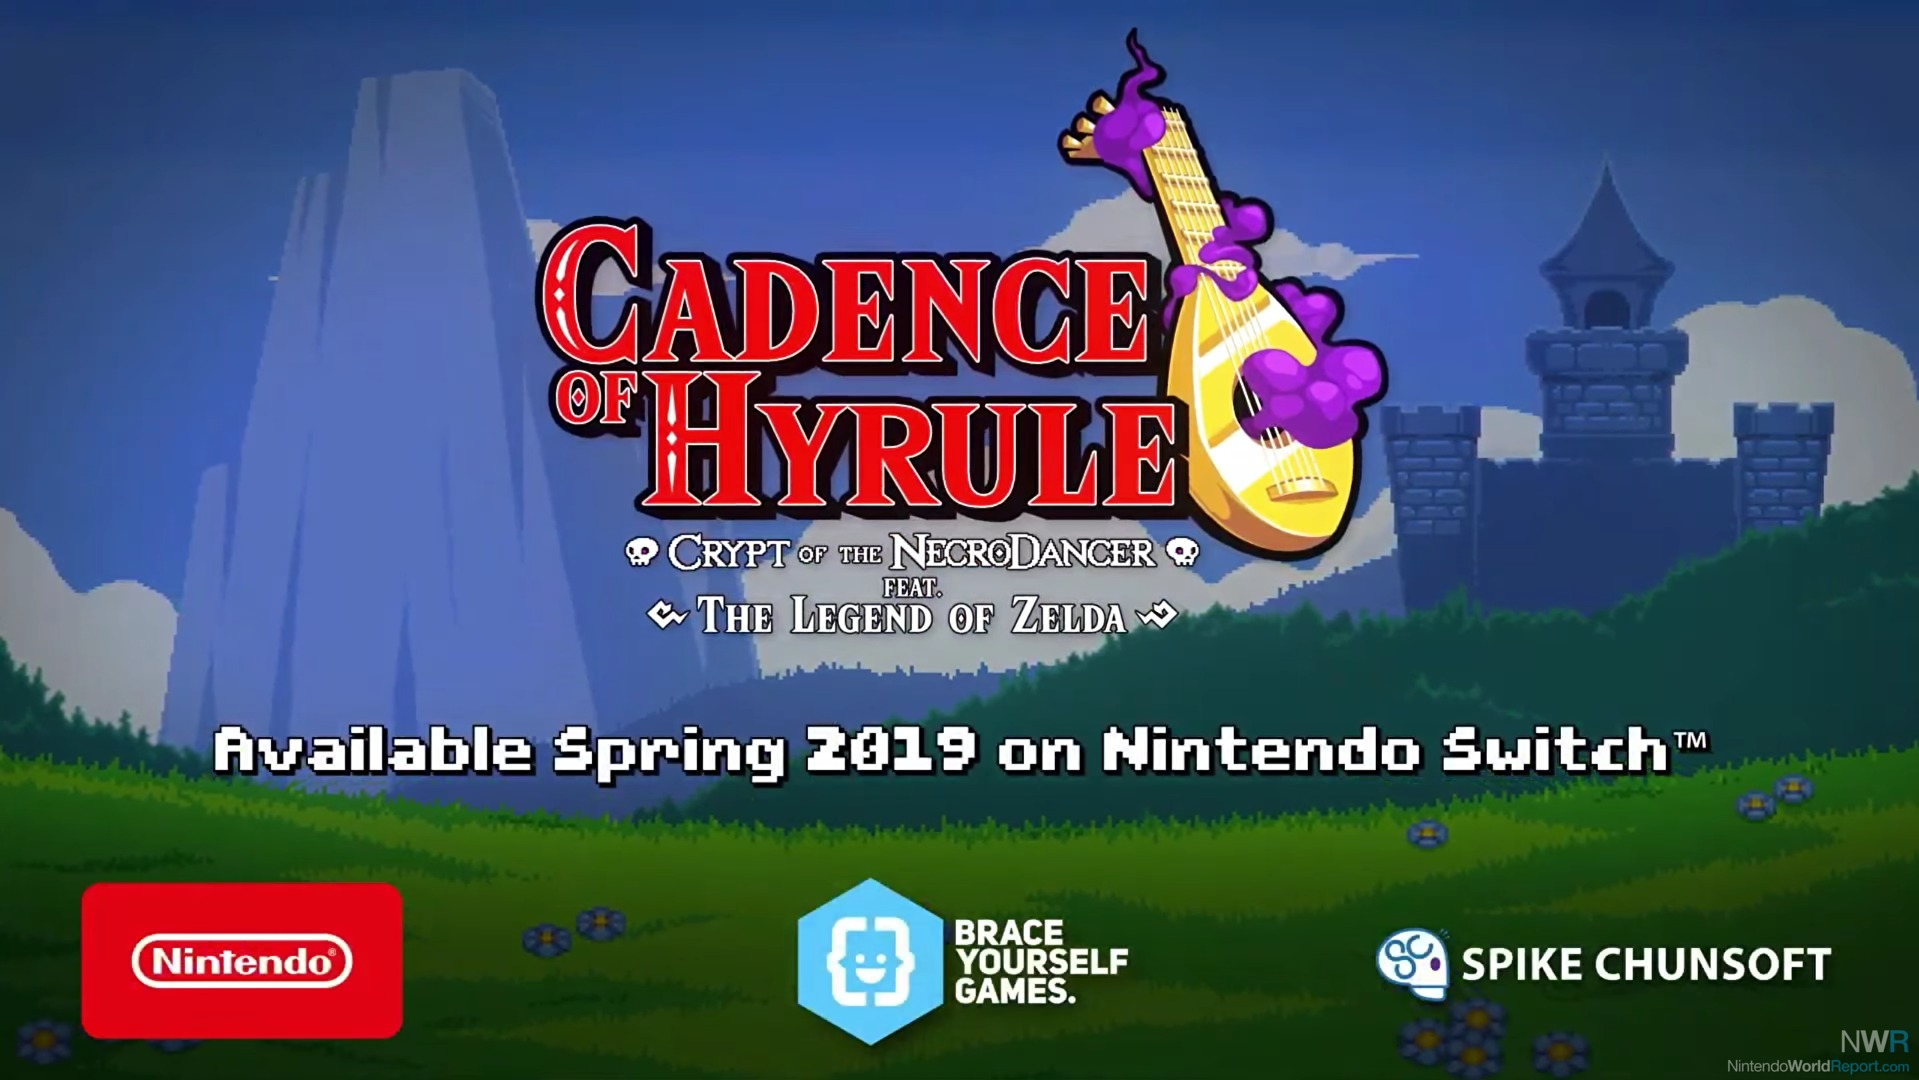 Nintendo Announces Cadence of Hyrule, a Surprise Zelda Game